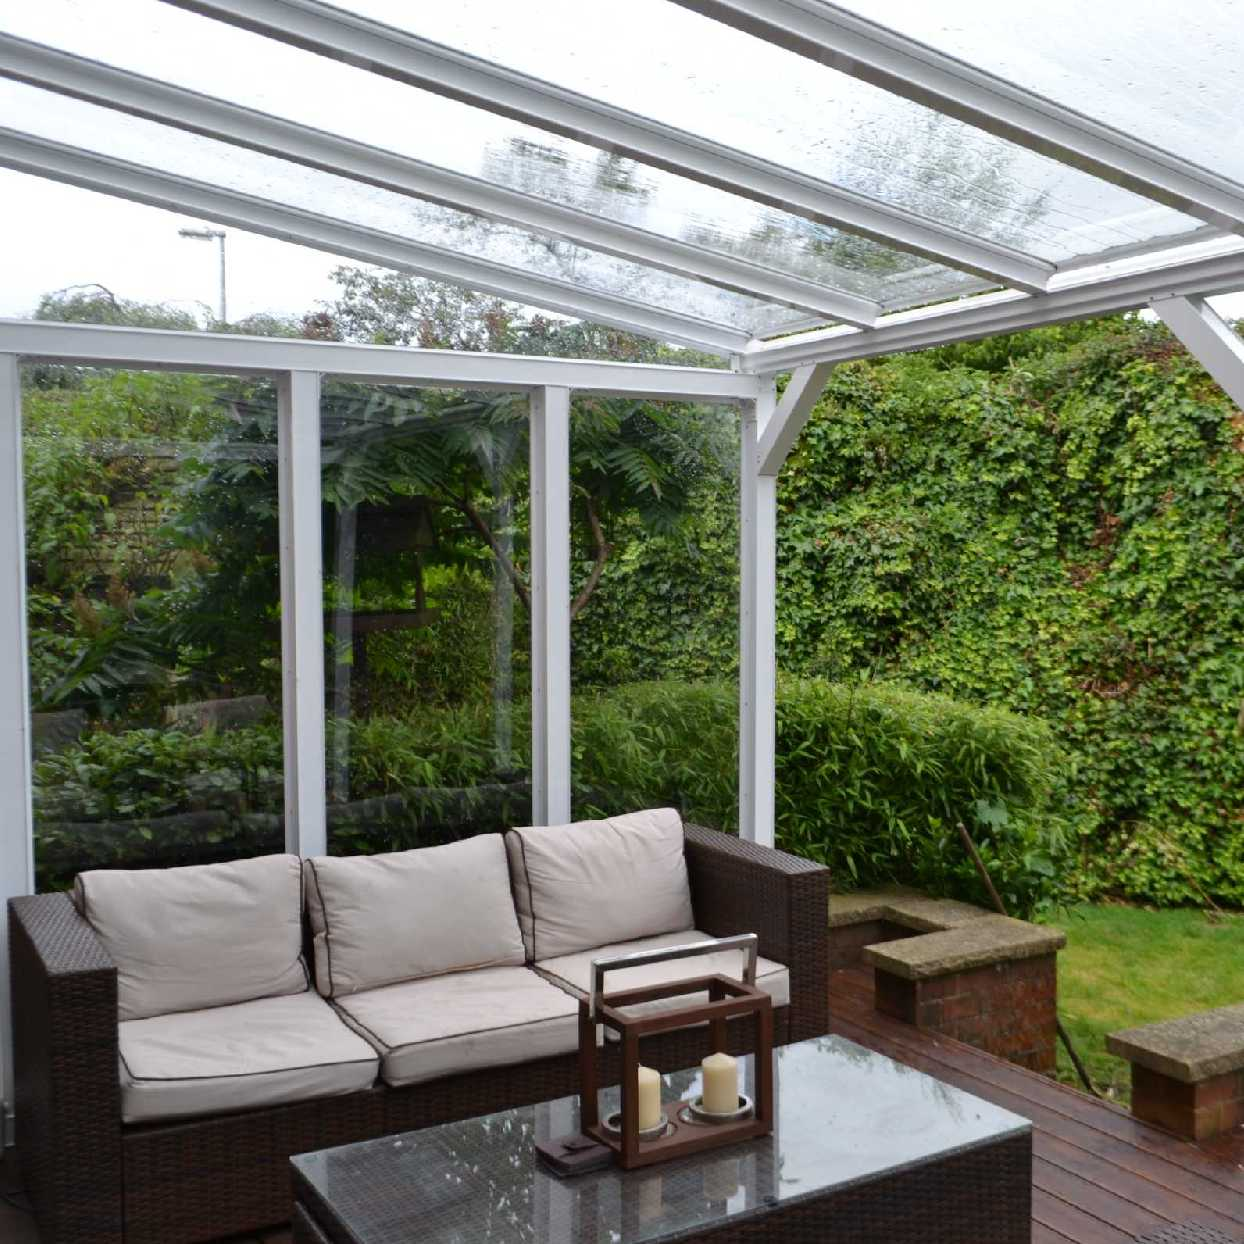 Great selection of Omega Smart White Lean-To Canopy with 16mm Polycarbonate Glazing - 6.0m (W) x 4.0m (P), (3) Supporting Posts